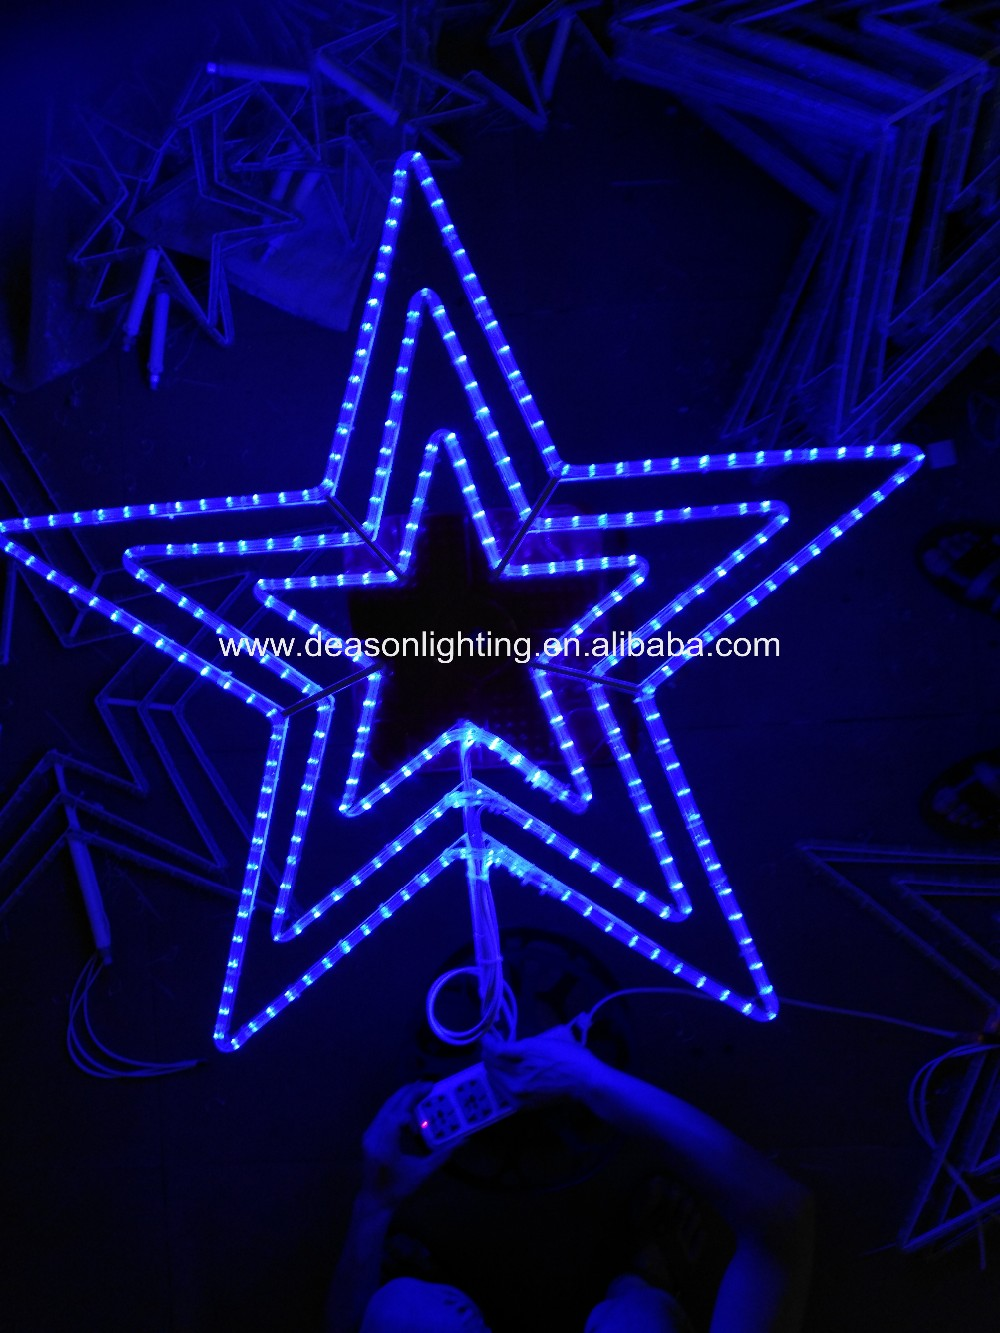 Outdoor Christmas North Star Lights - Buy Five-pointed Lighted Star ...